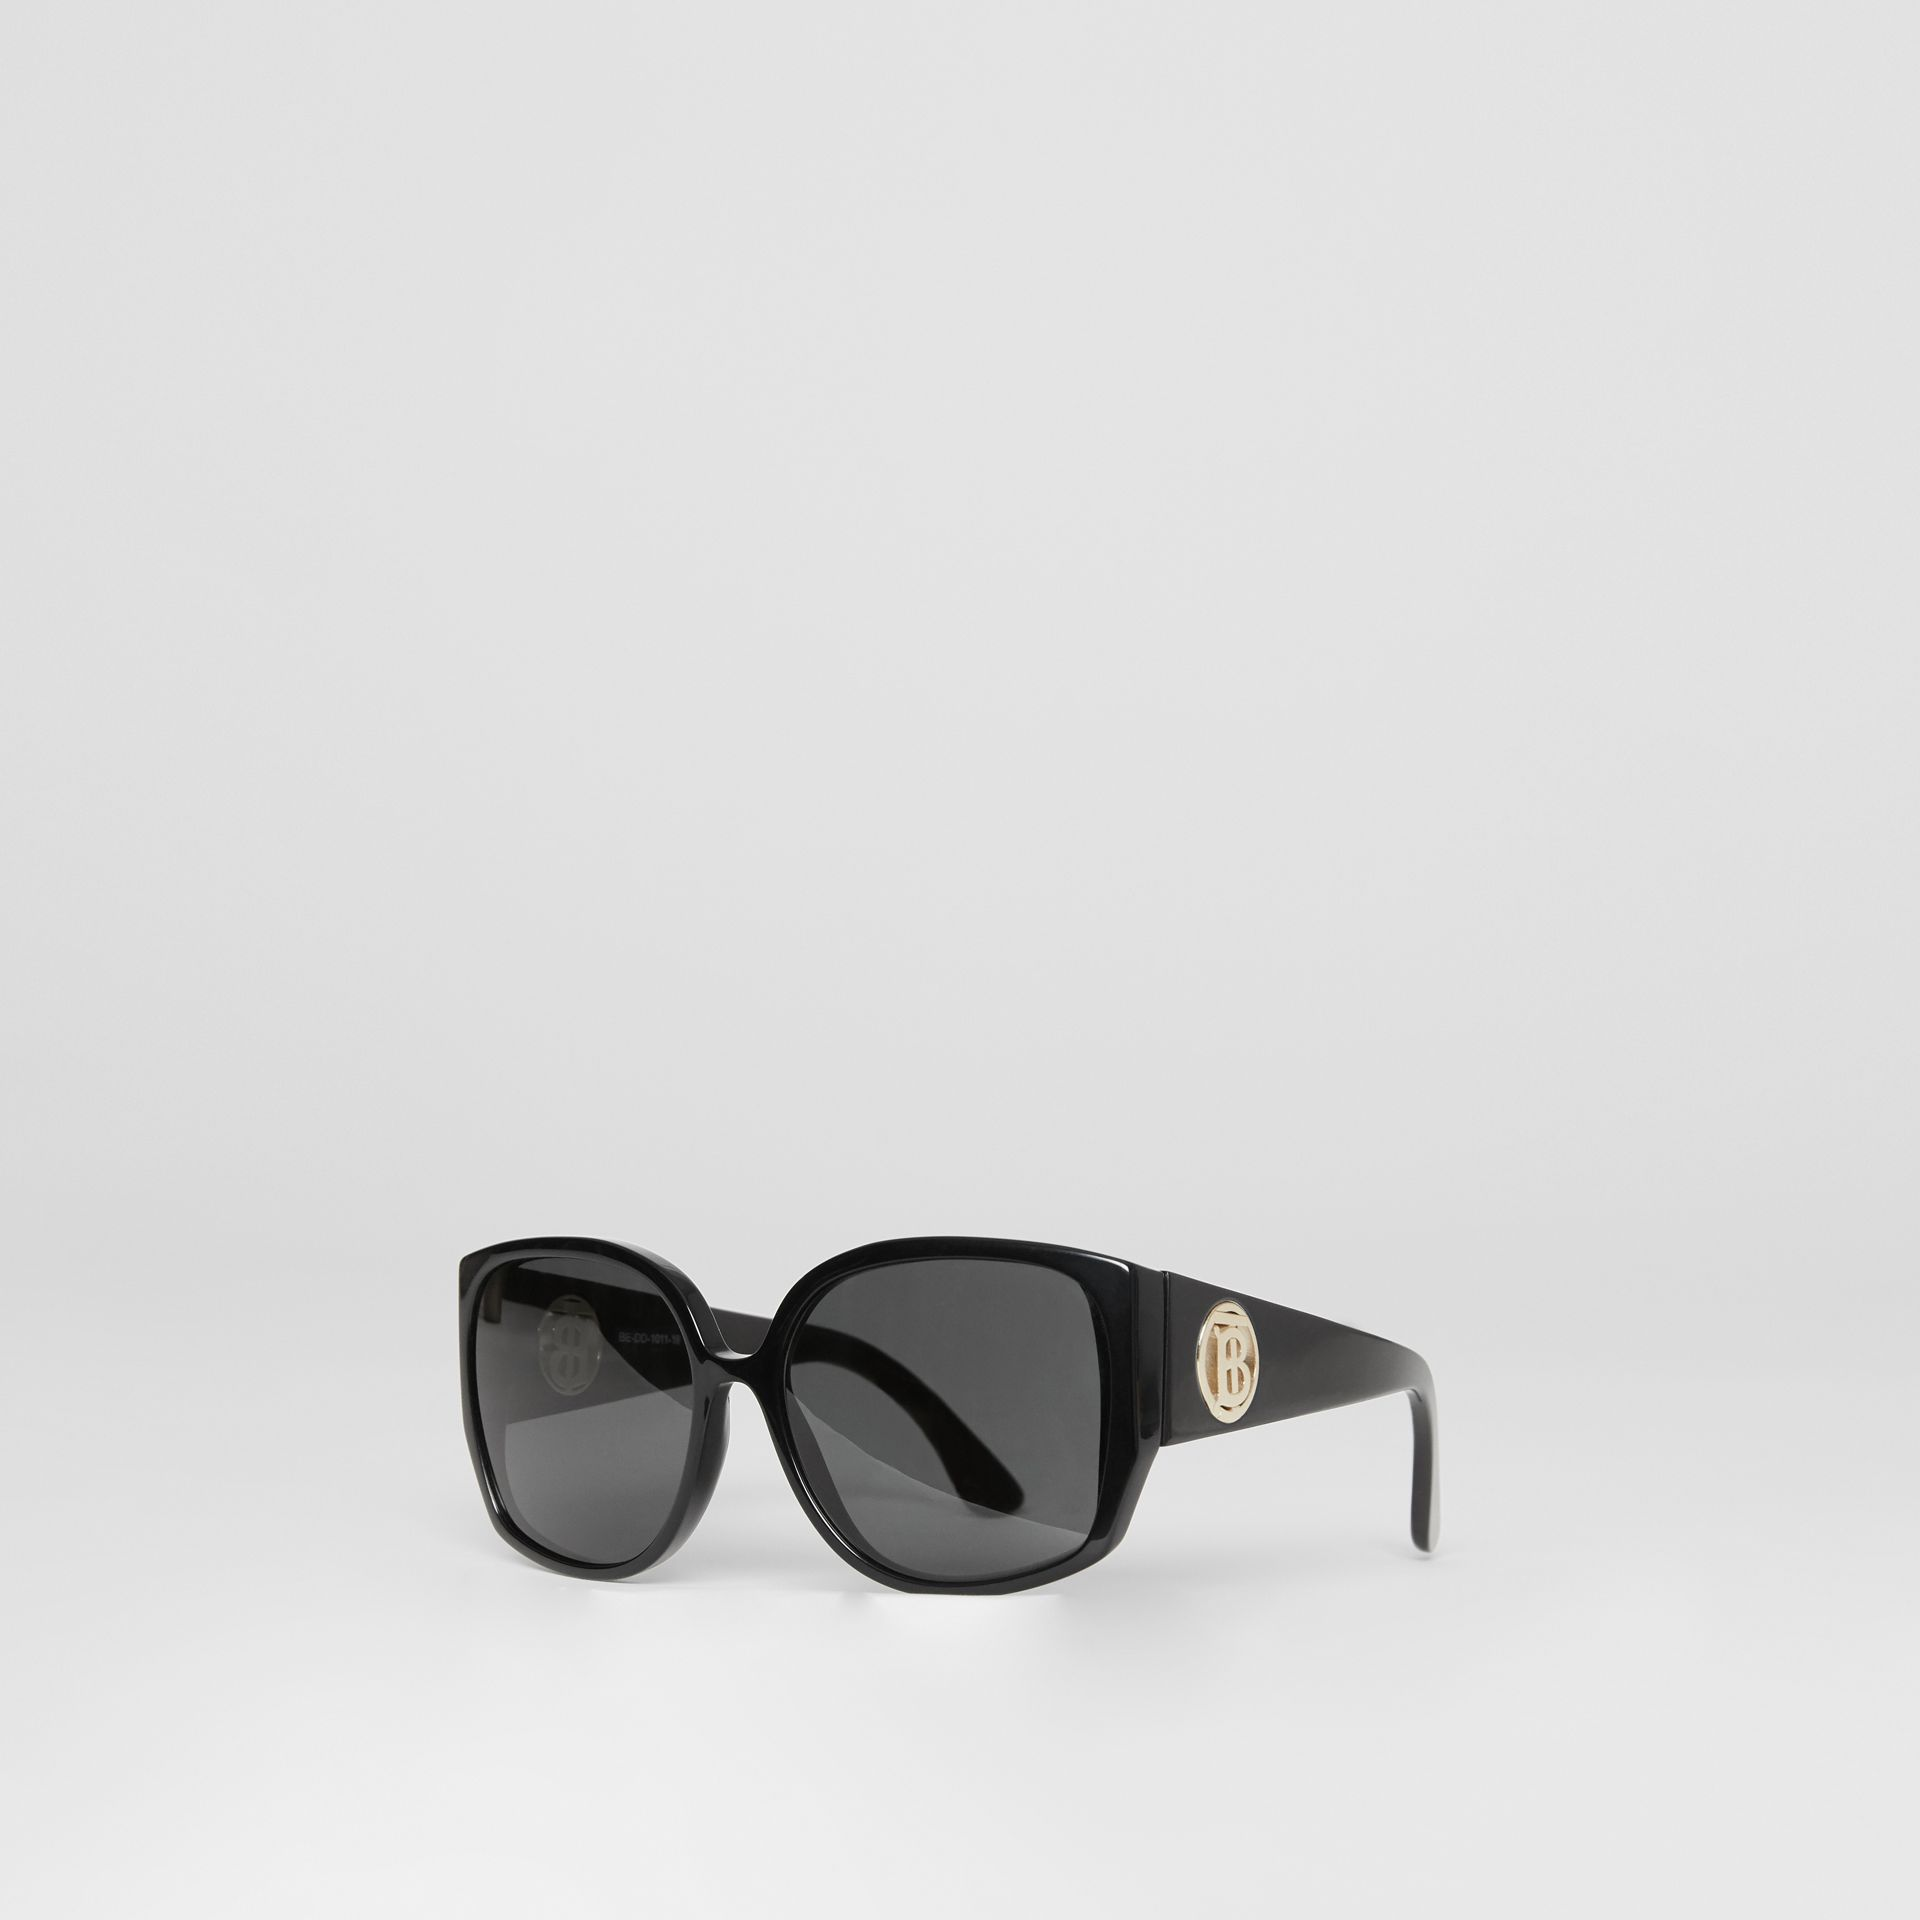 Oversized Butterfly Frame Sunglasses in Black - Women | Burberry - gallery image 5